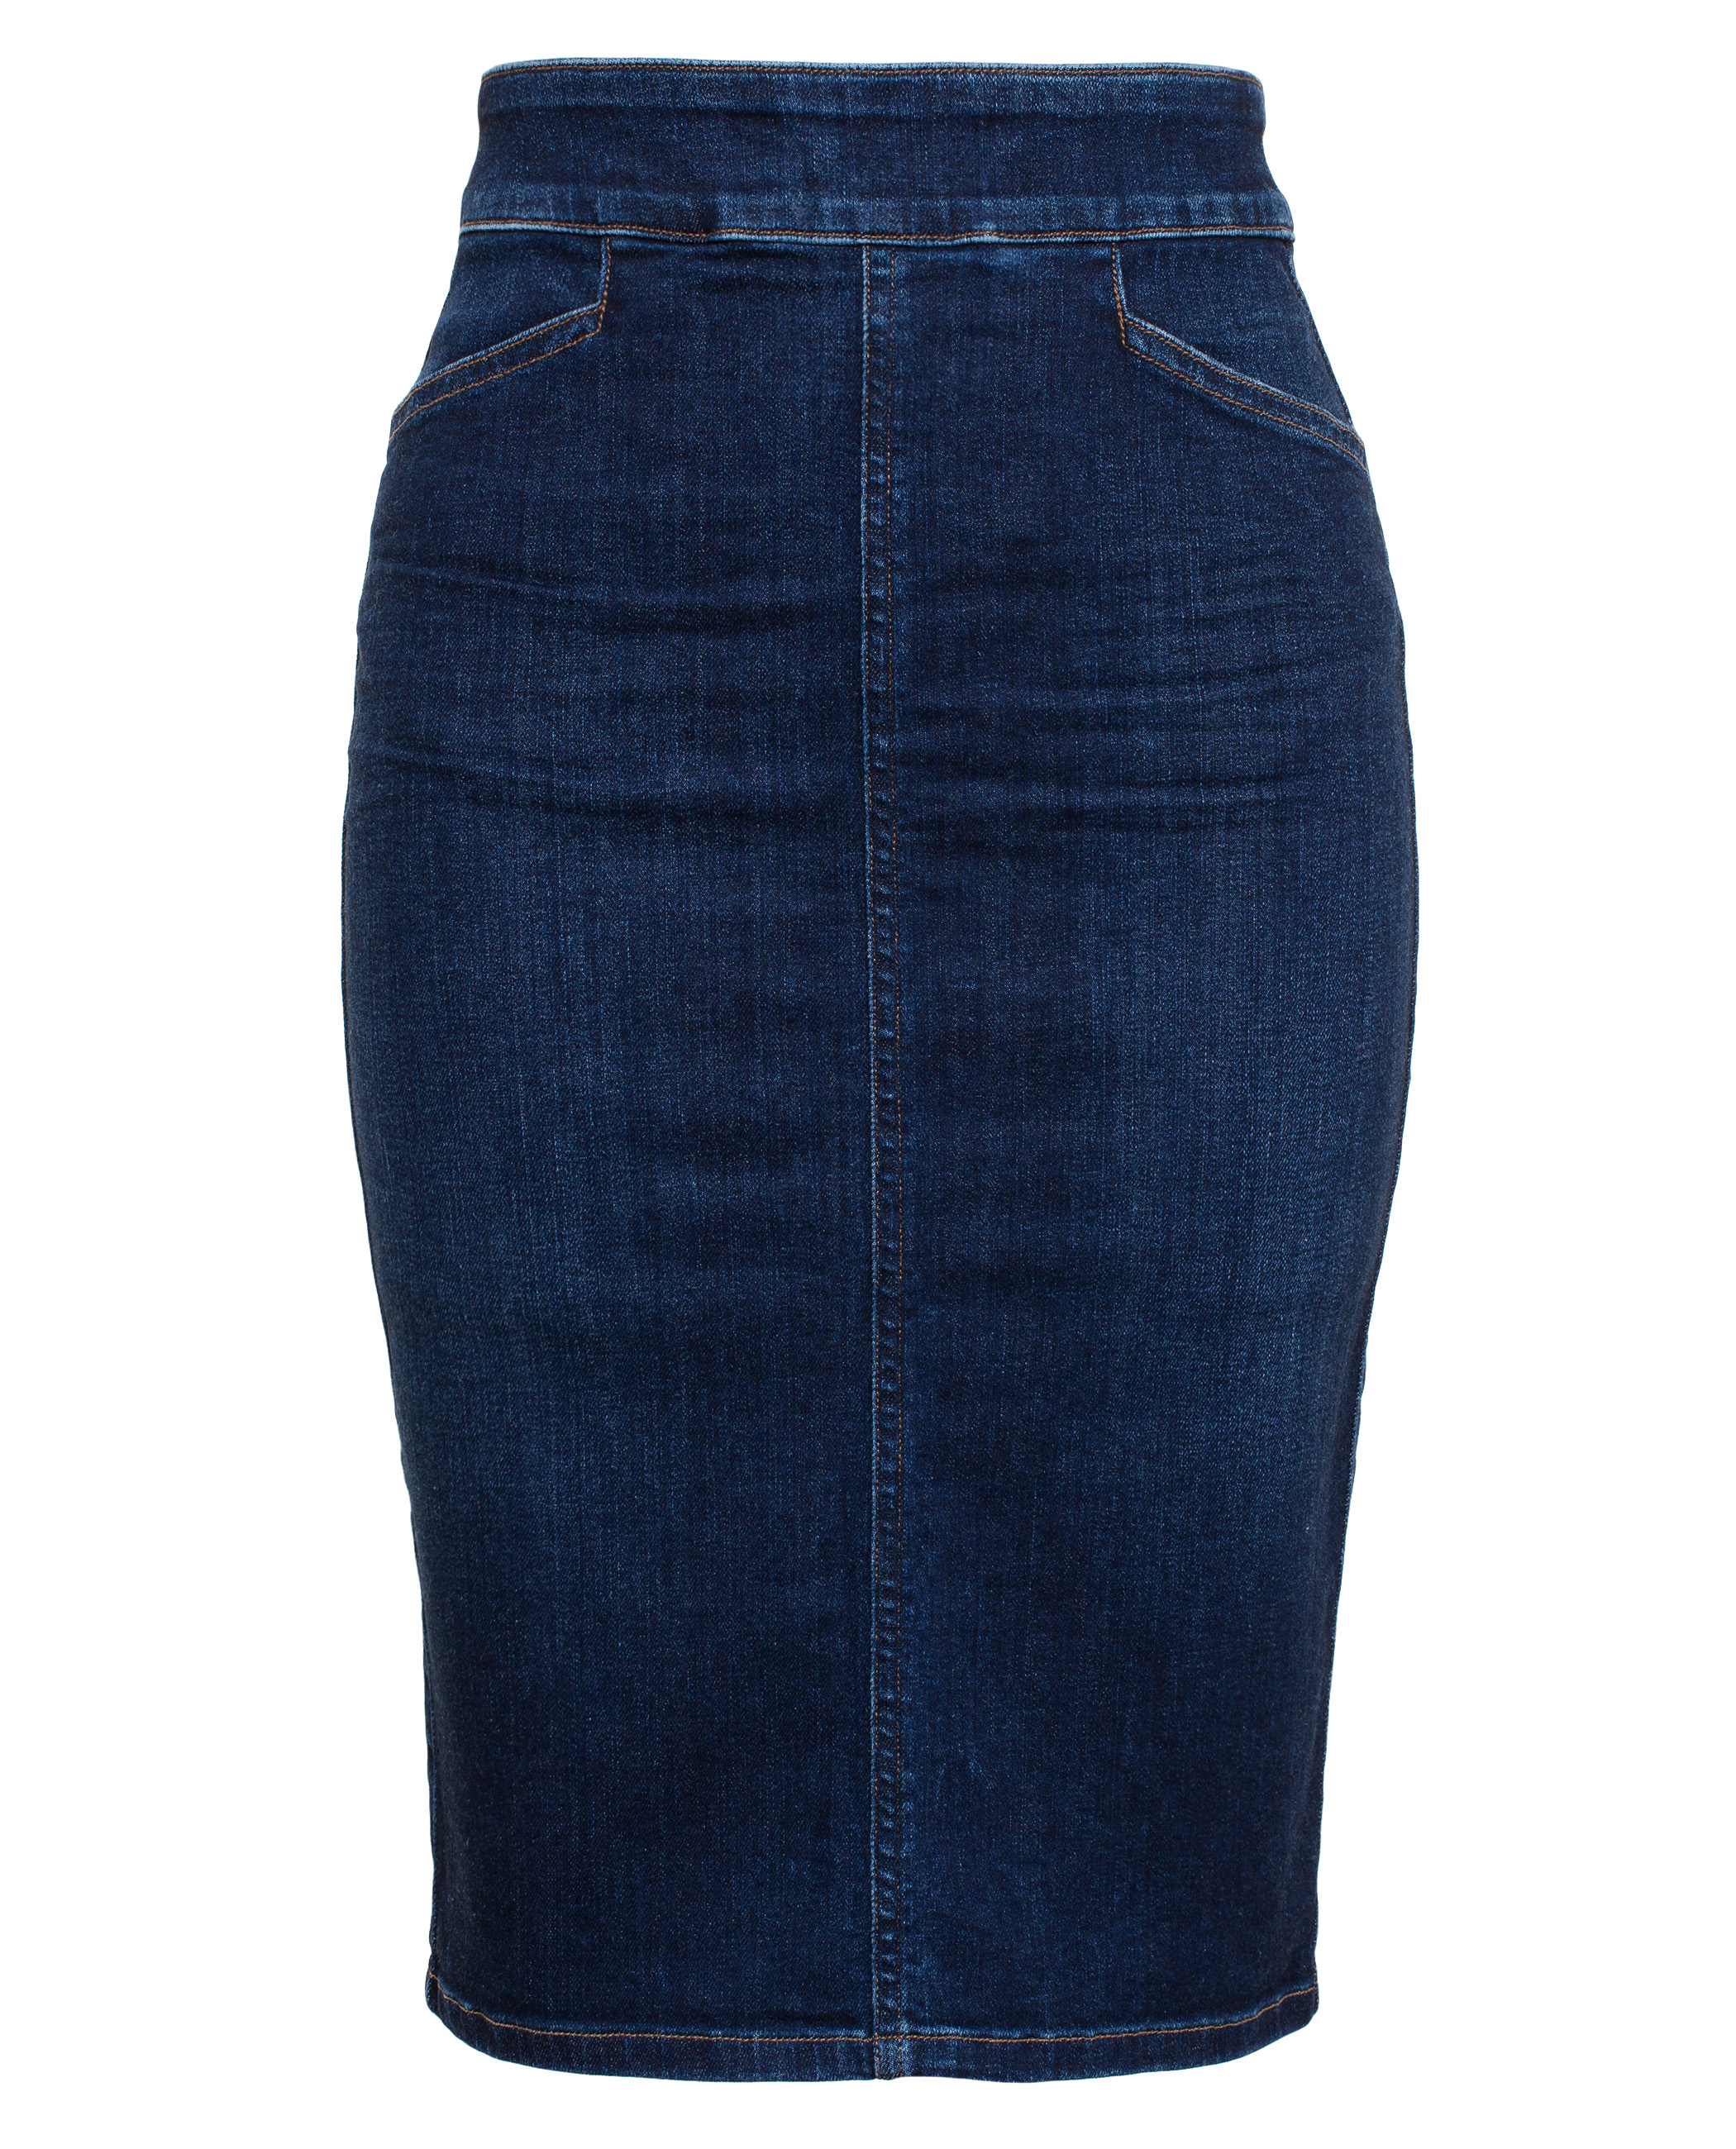 Free shipping and returns on Women's Denim Skirts at erlinelomantkgs831.ga